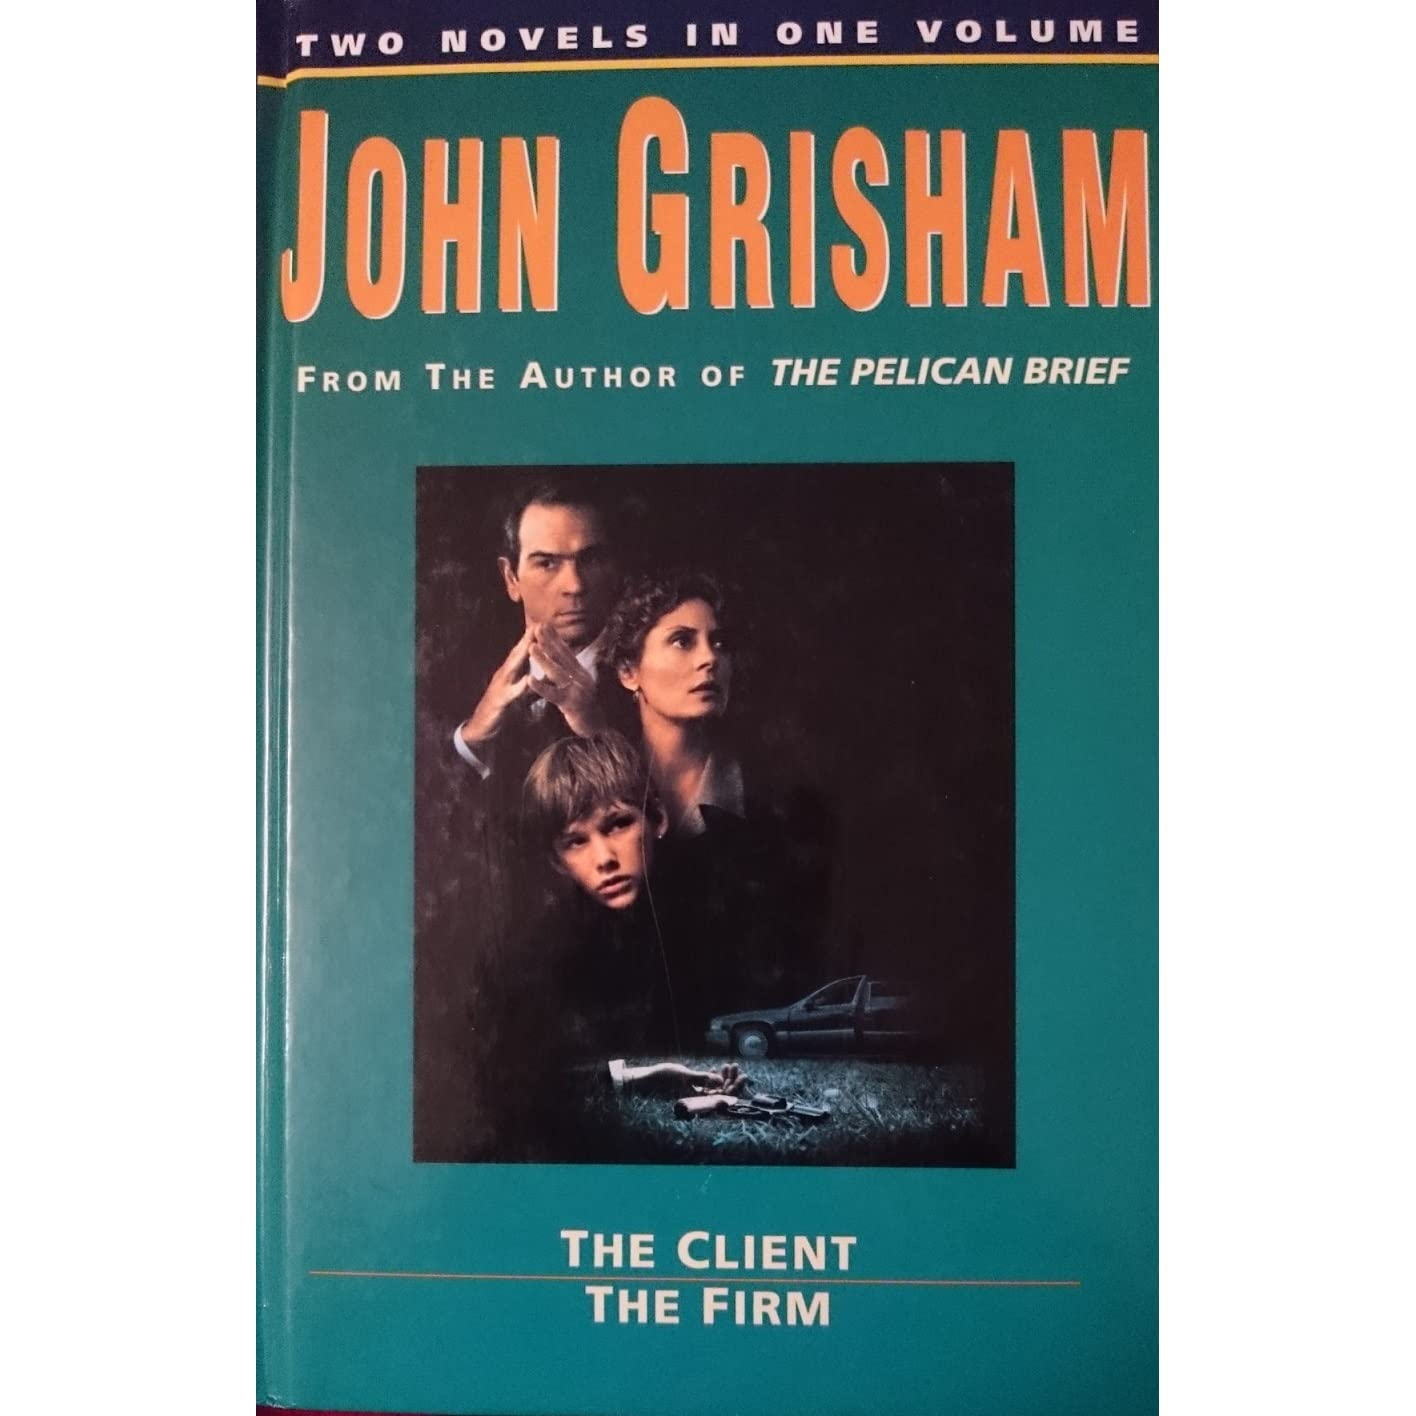 an analysis of john grishams crime novel the client Free essay: analysis of the client by john grisham the client by john grisham takes place in memphis, tennessee it starts out with a little boy, named mark.